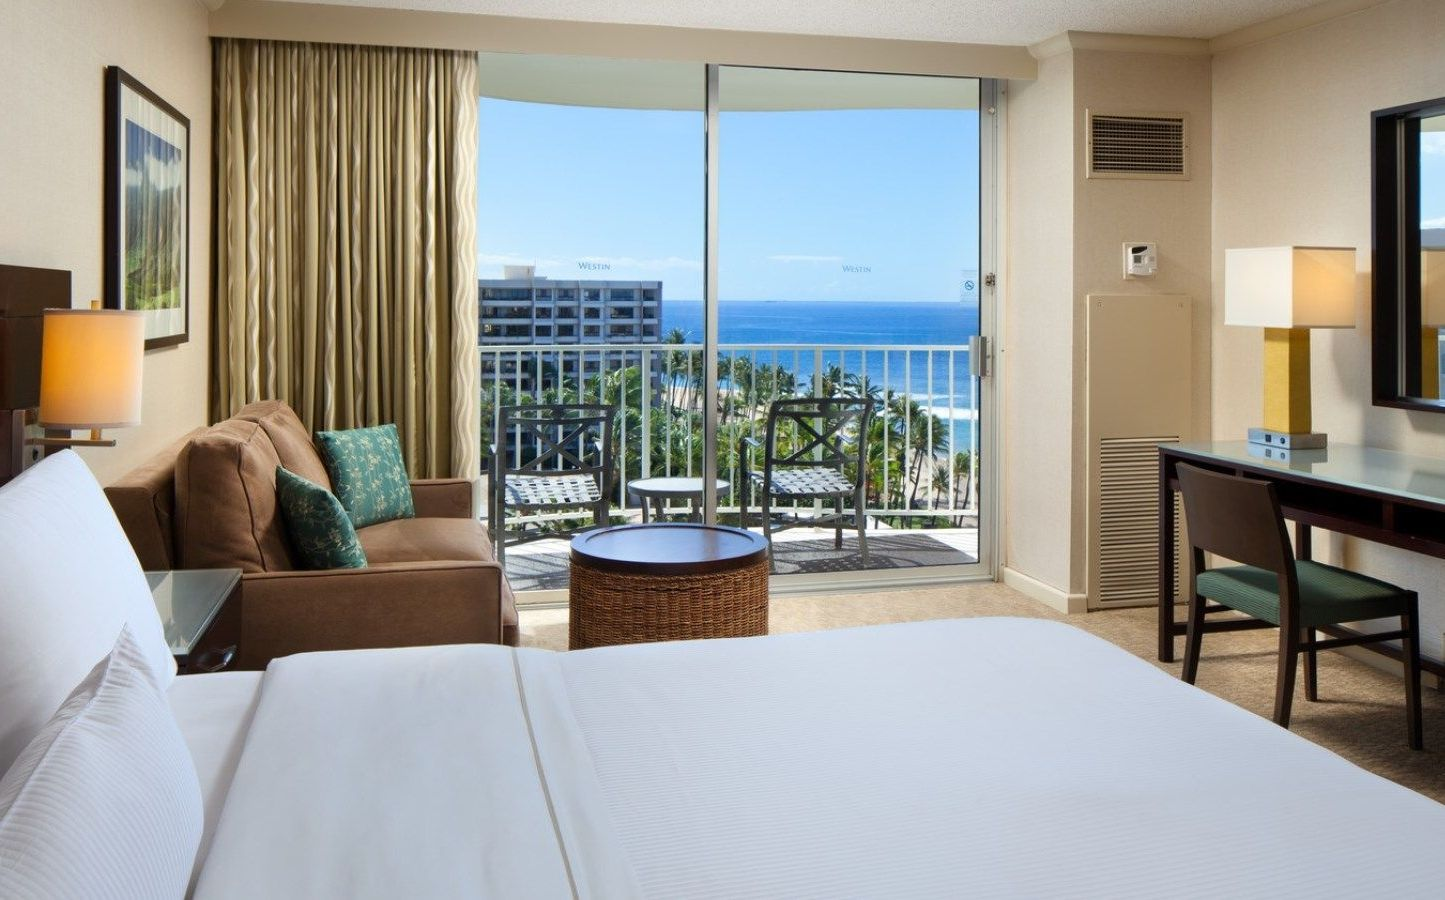 Kaanapali Beach Resorts | The Westin Maui Resort & Spa - Rooms ...